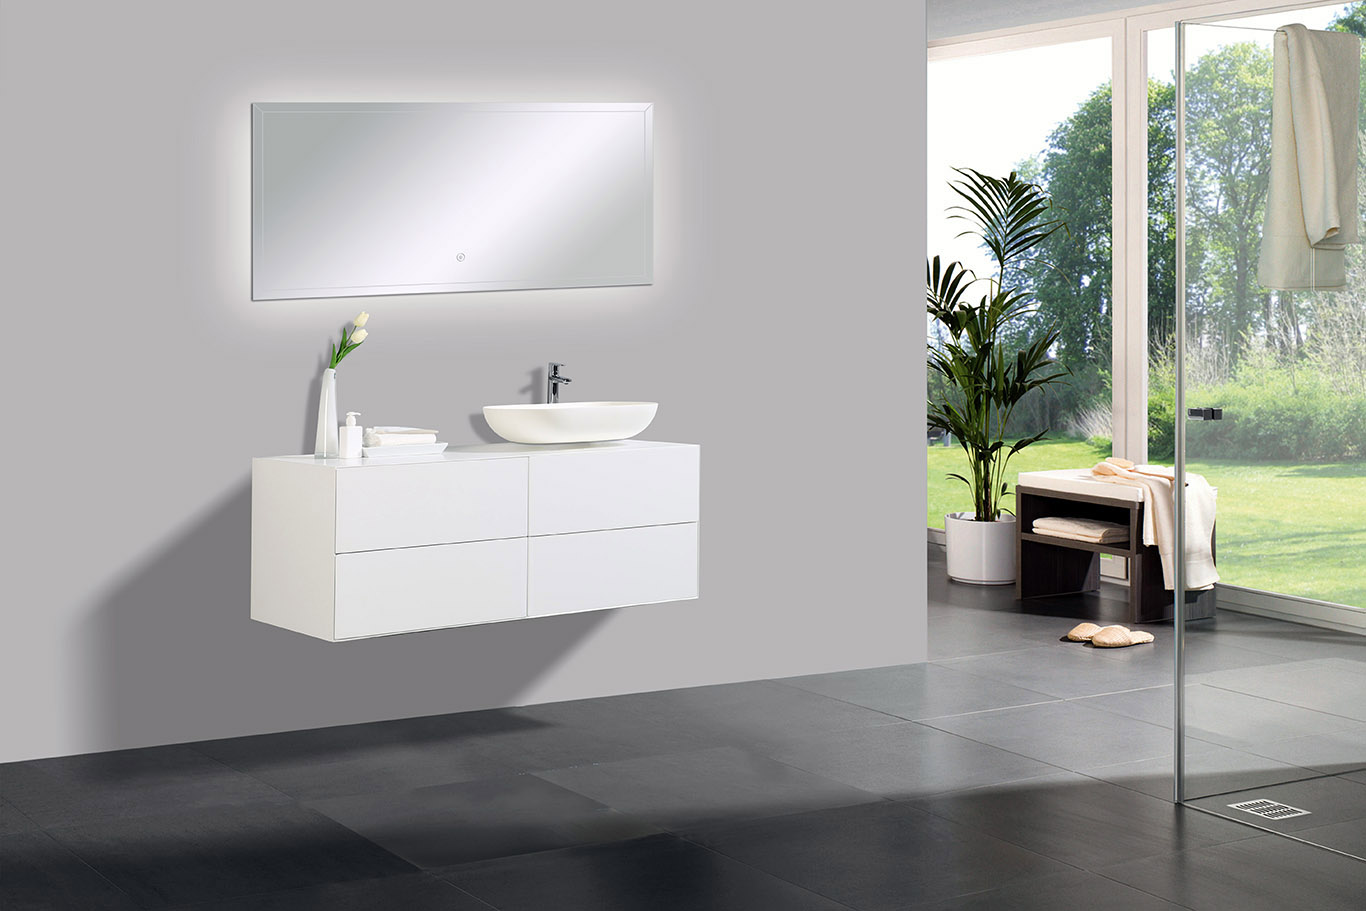 Bathroom furniture set Milou 1200 white matte - optional mirror and basin